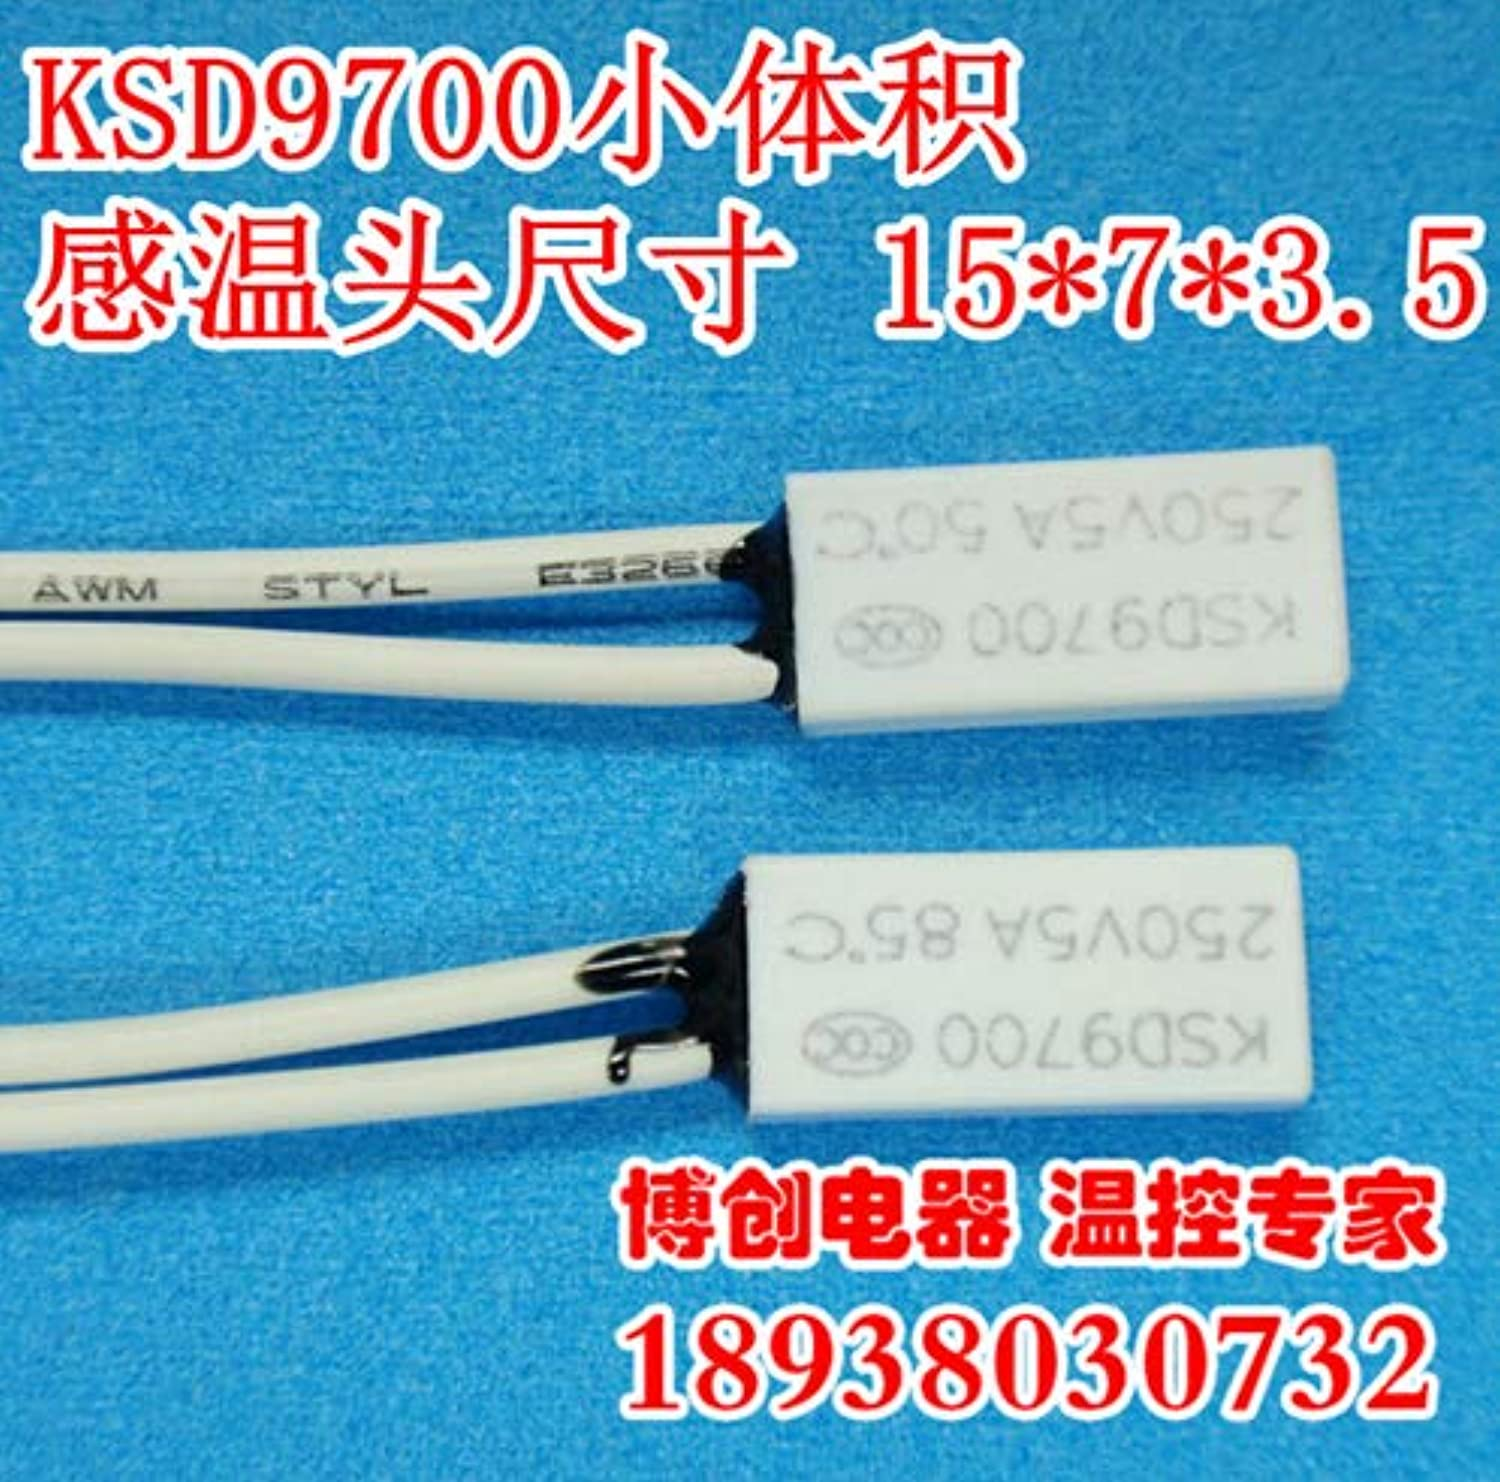 20pcs Thermostat KSD9700 TB05 75 Degrees 5A250V Normally Closed N.C Thermal Predector Temperature Switch Volume 15  7  3.5mm